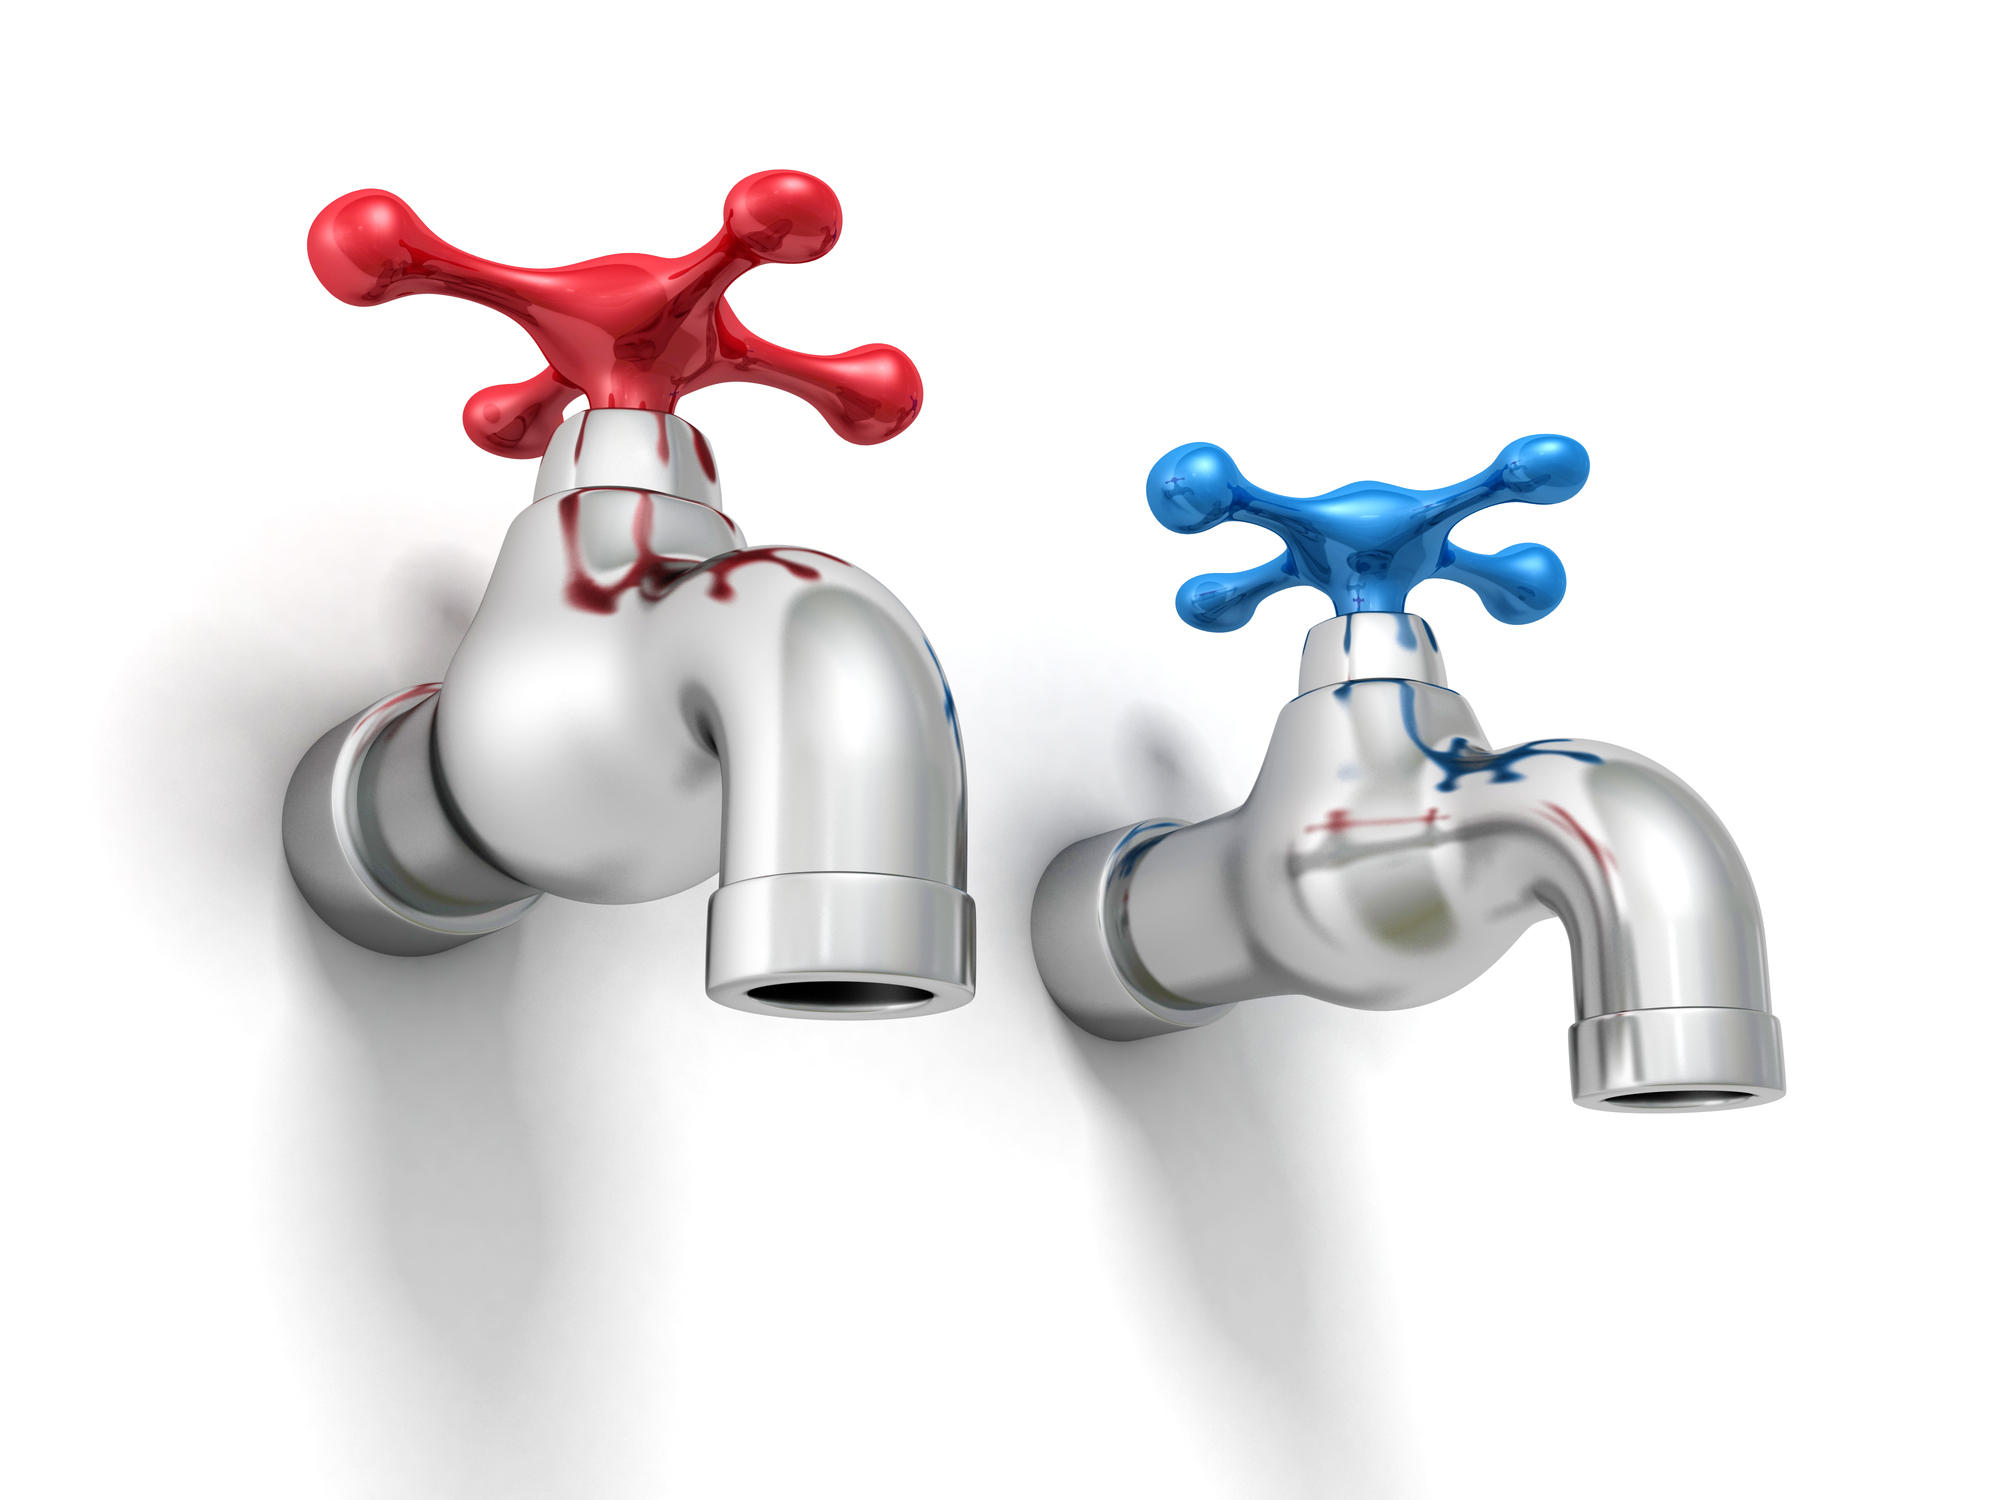 Two water taps--one hot and one cold.